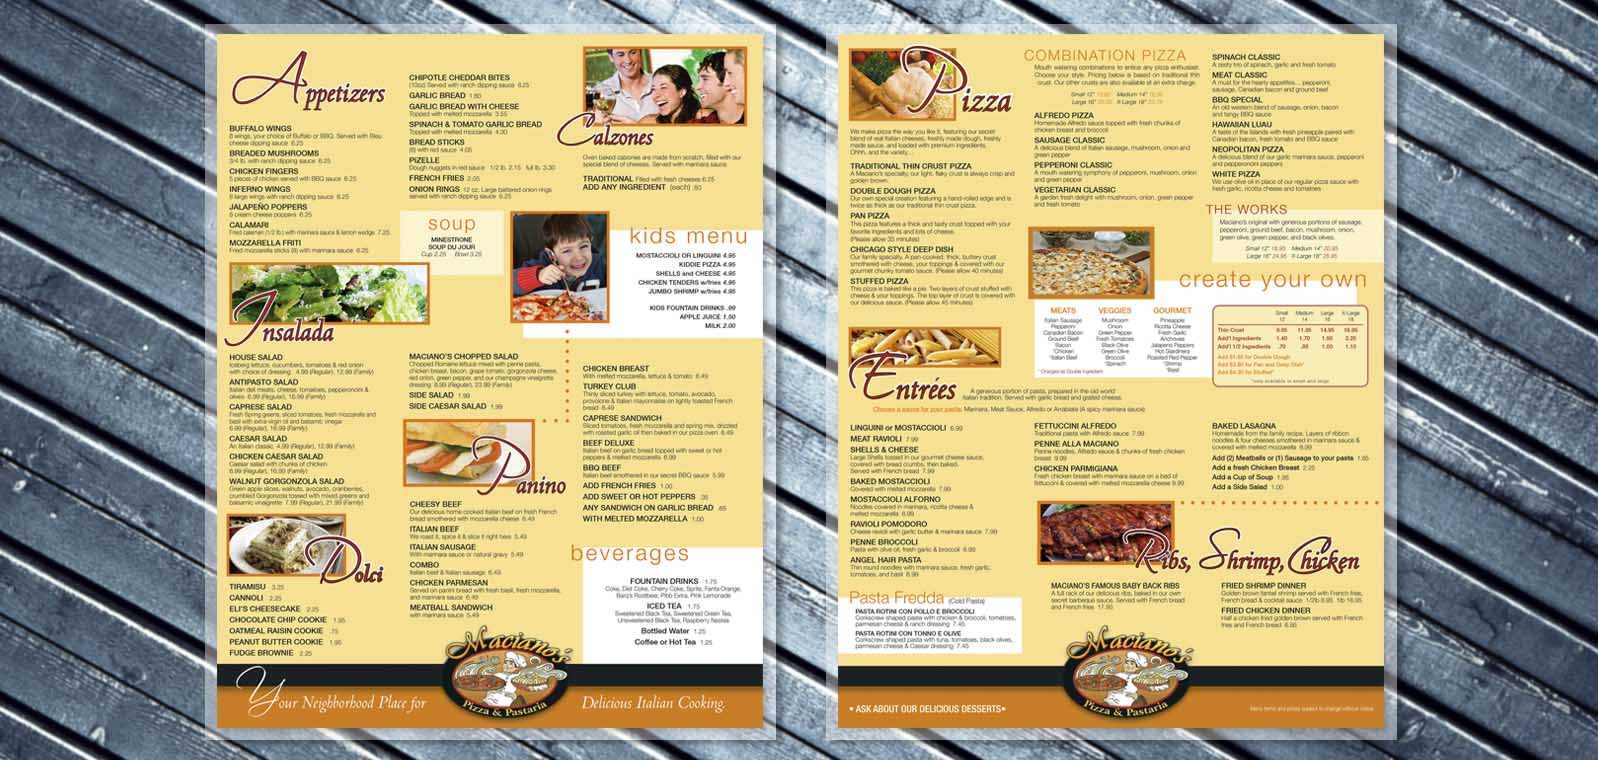 Restaurant Dine In menu Graphic Design from Roselle Graphic Designer Controlled Color, Inc.